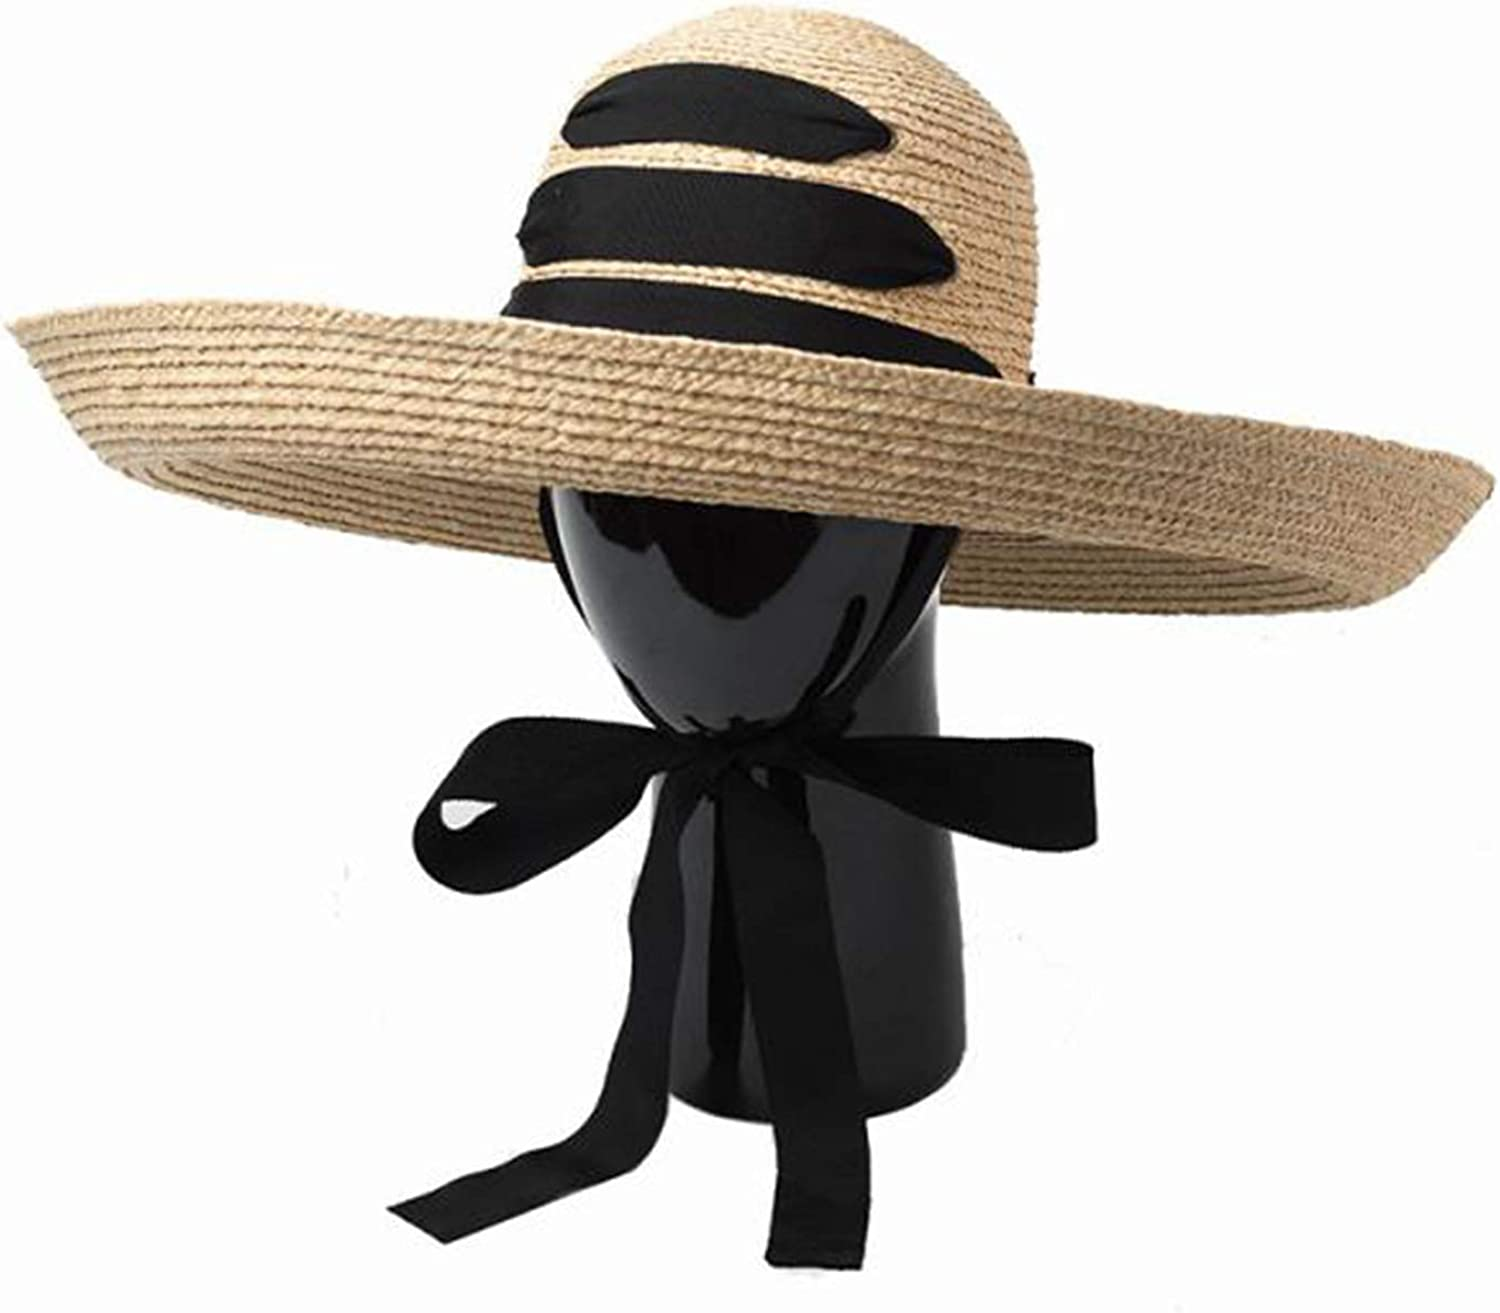 Fashion Sun Hat Female, Retro Dome Curling Big Eaves Rafi Grass Straw Hat, Travel Sunshade Big Beach Straw Hat